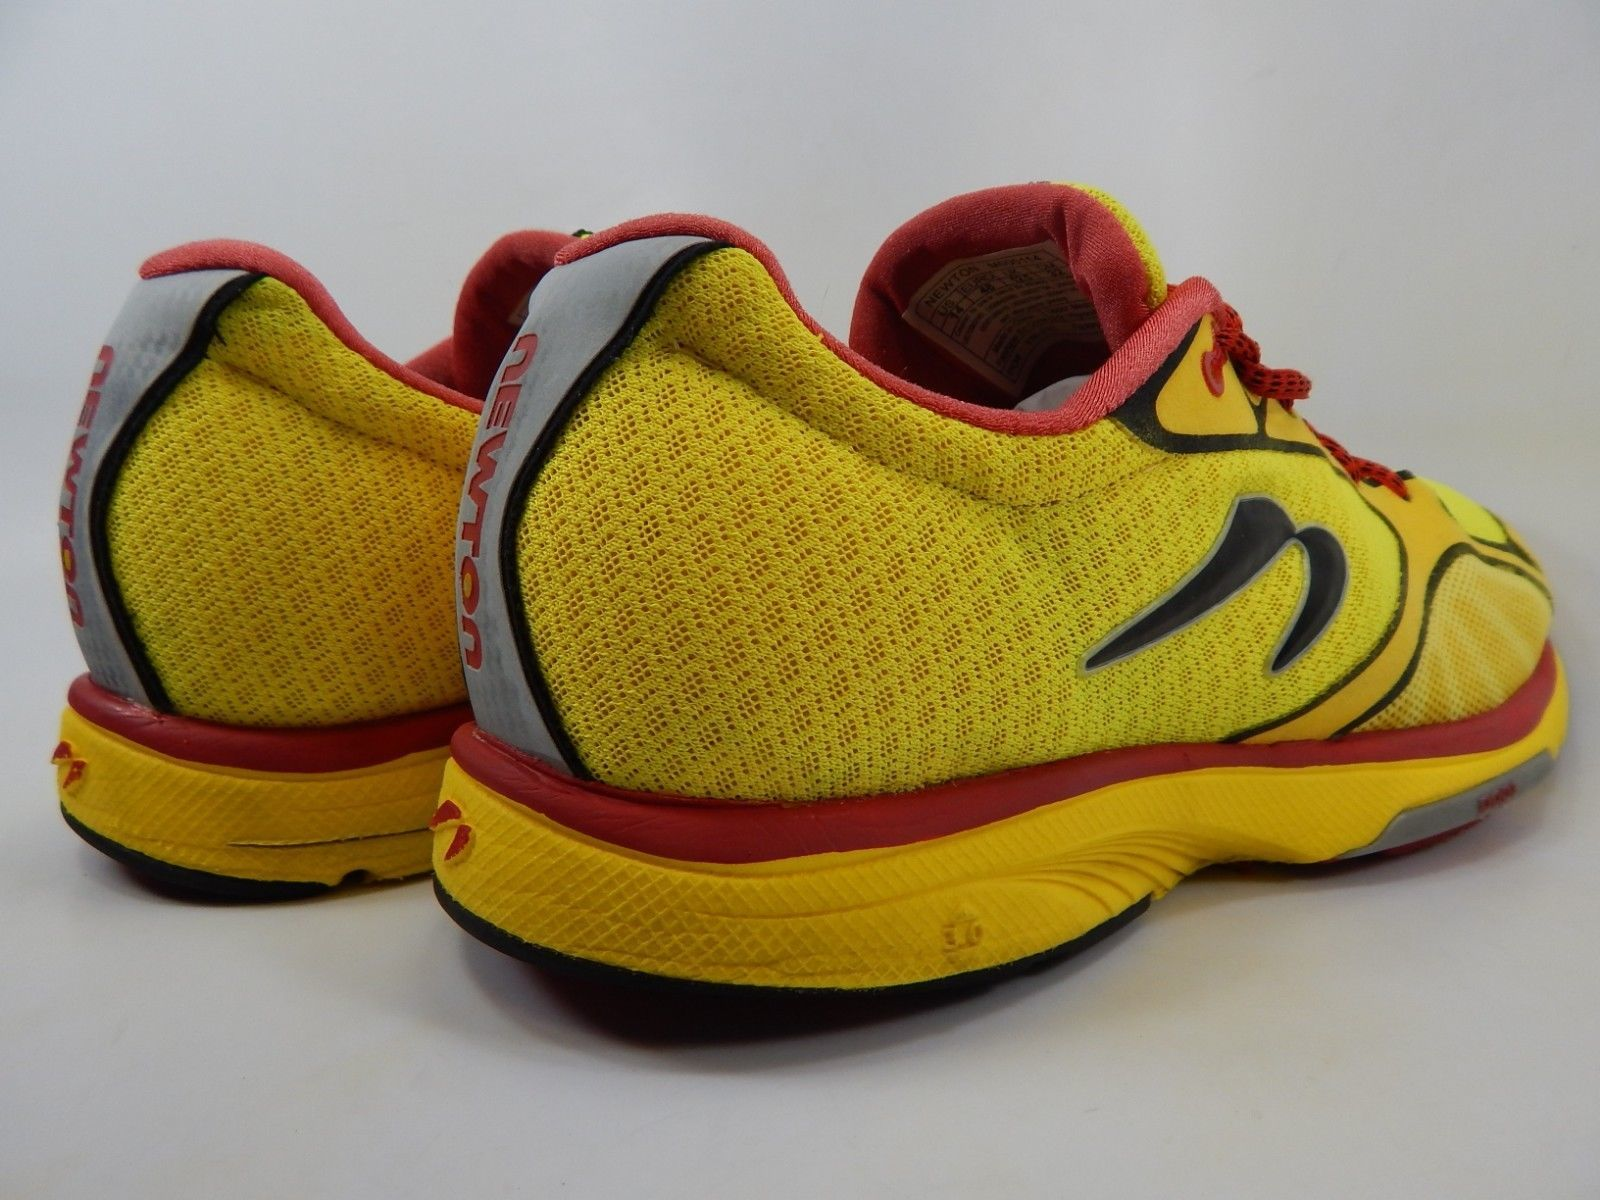 Newton Gravity III Size US 14 M (D) EU 48 Men's Running Shoes Yellow M000114